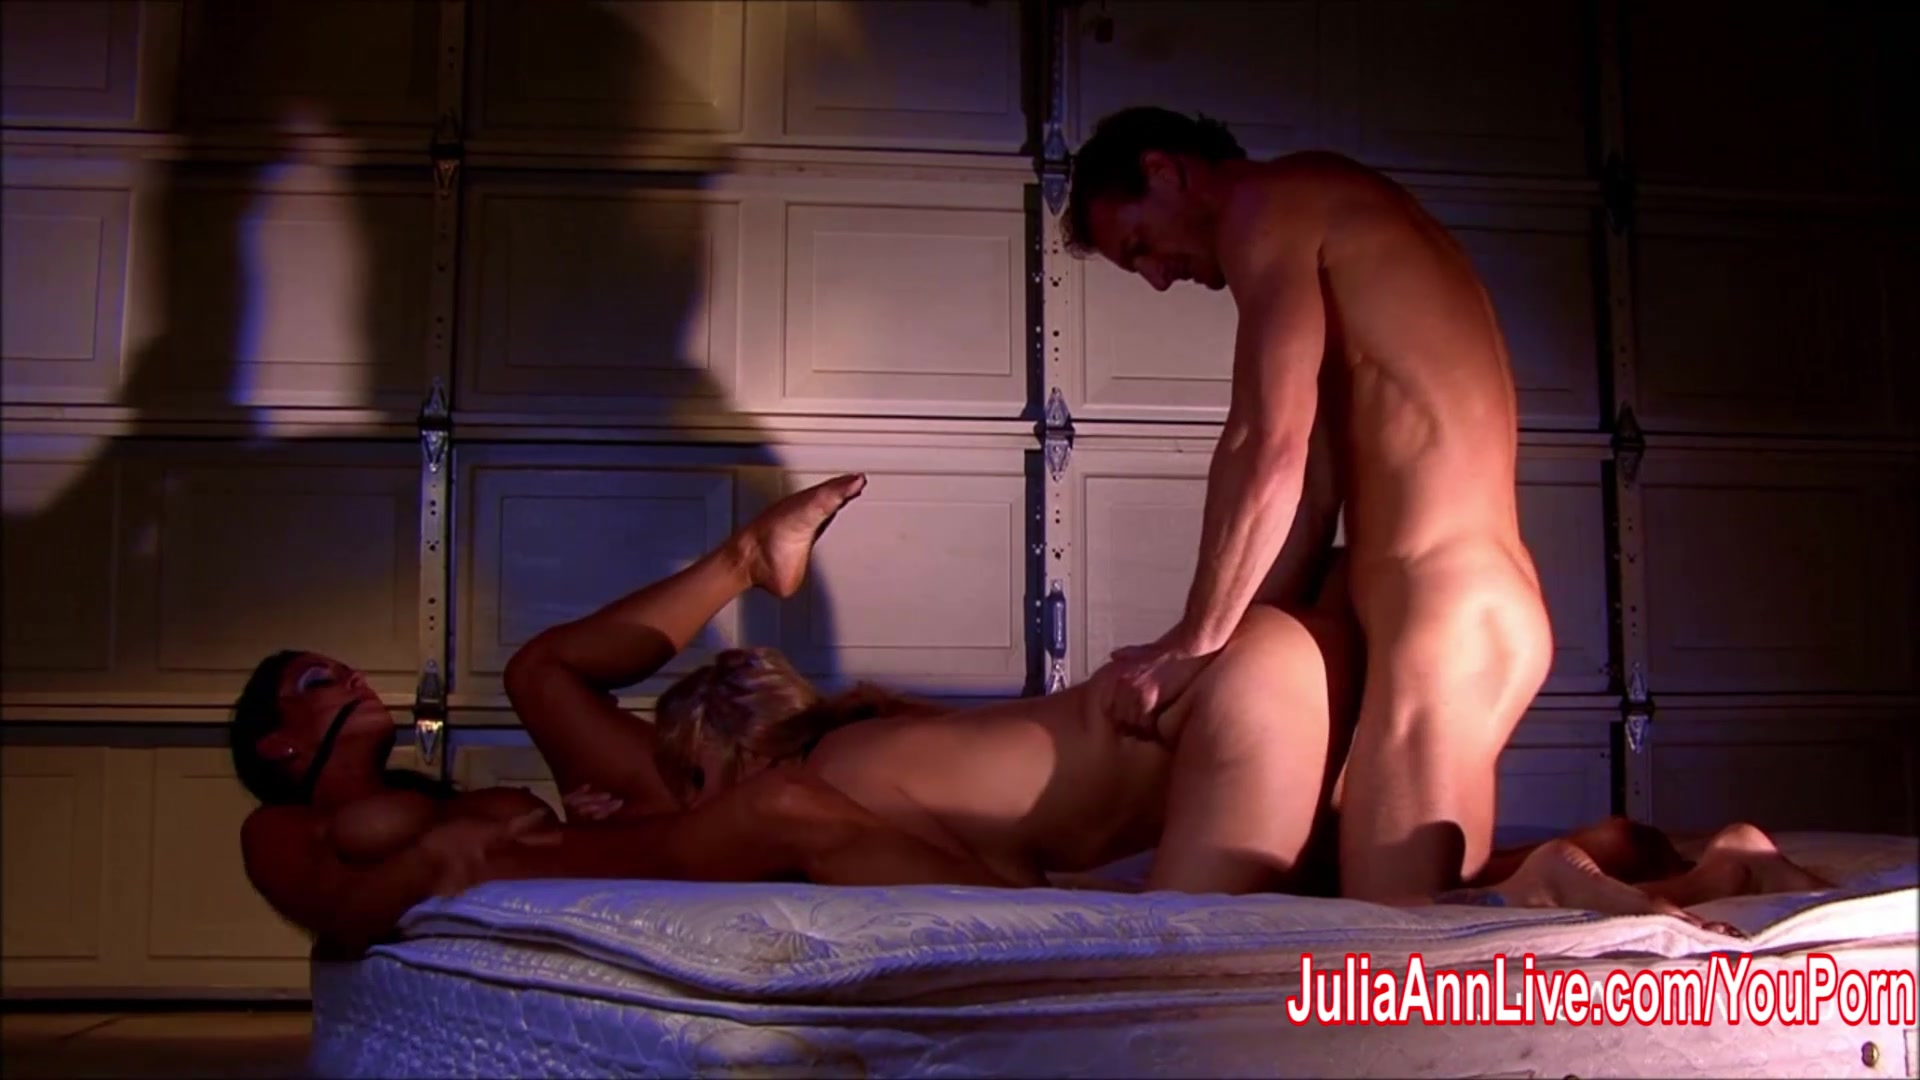 Shemale porn painful free